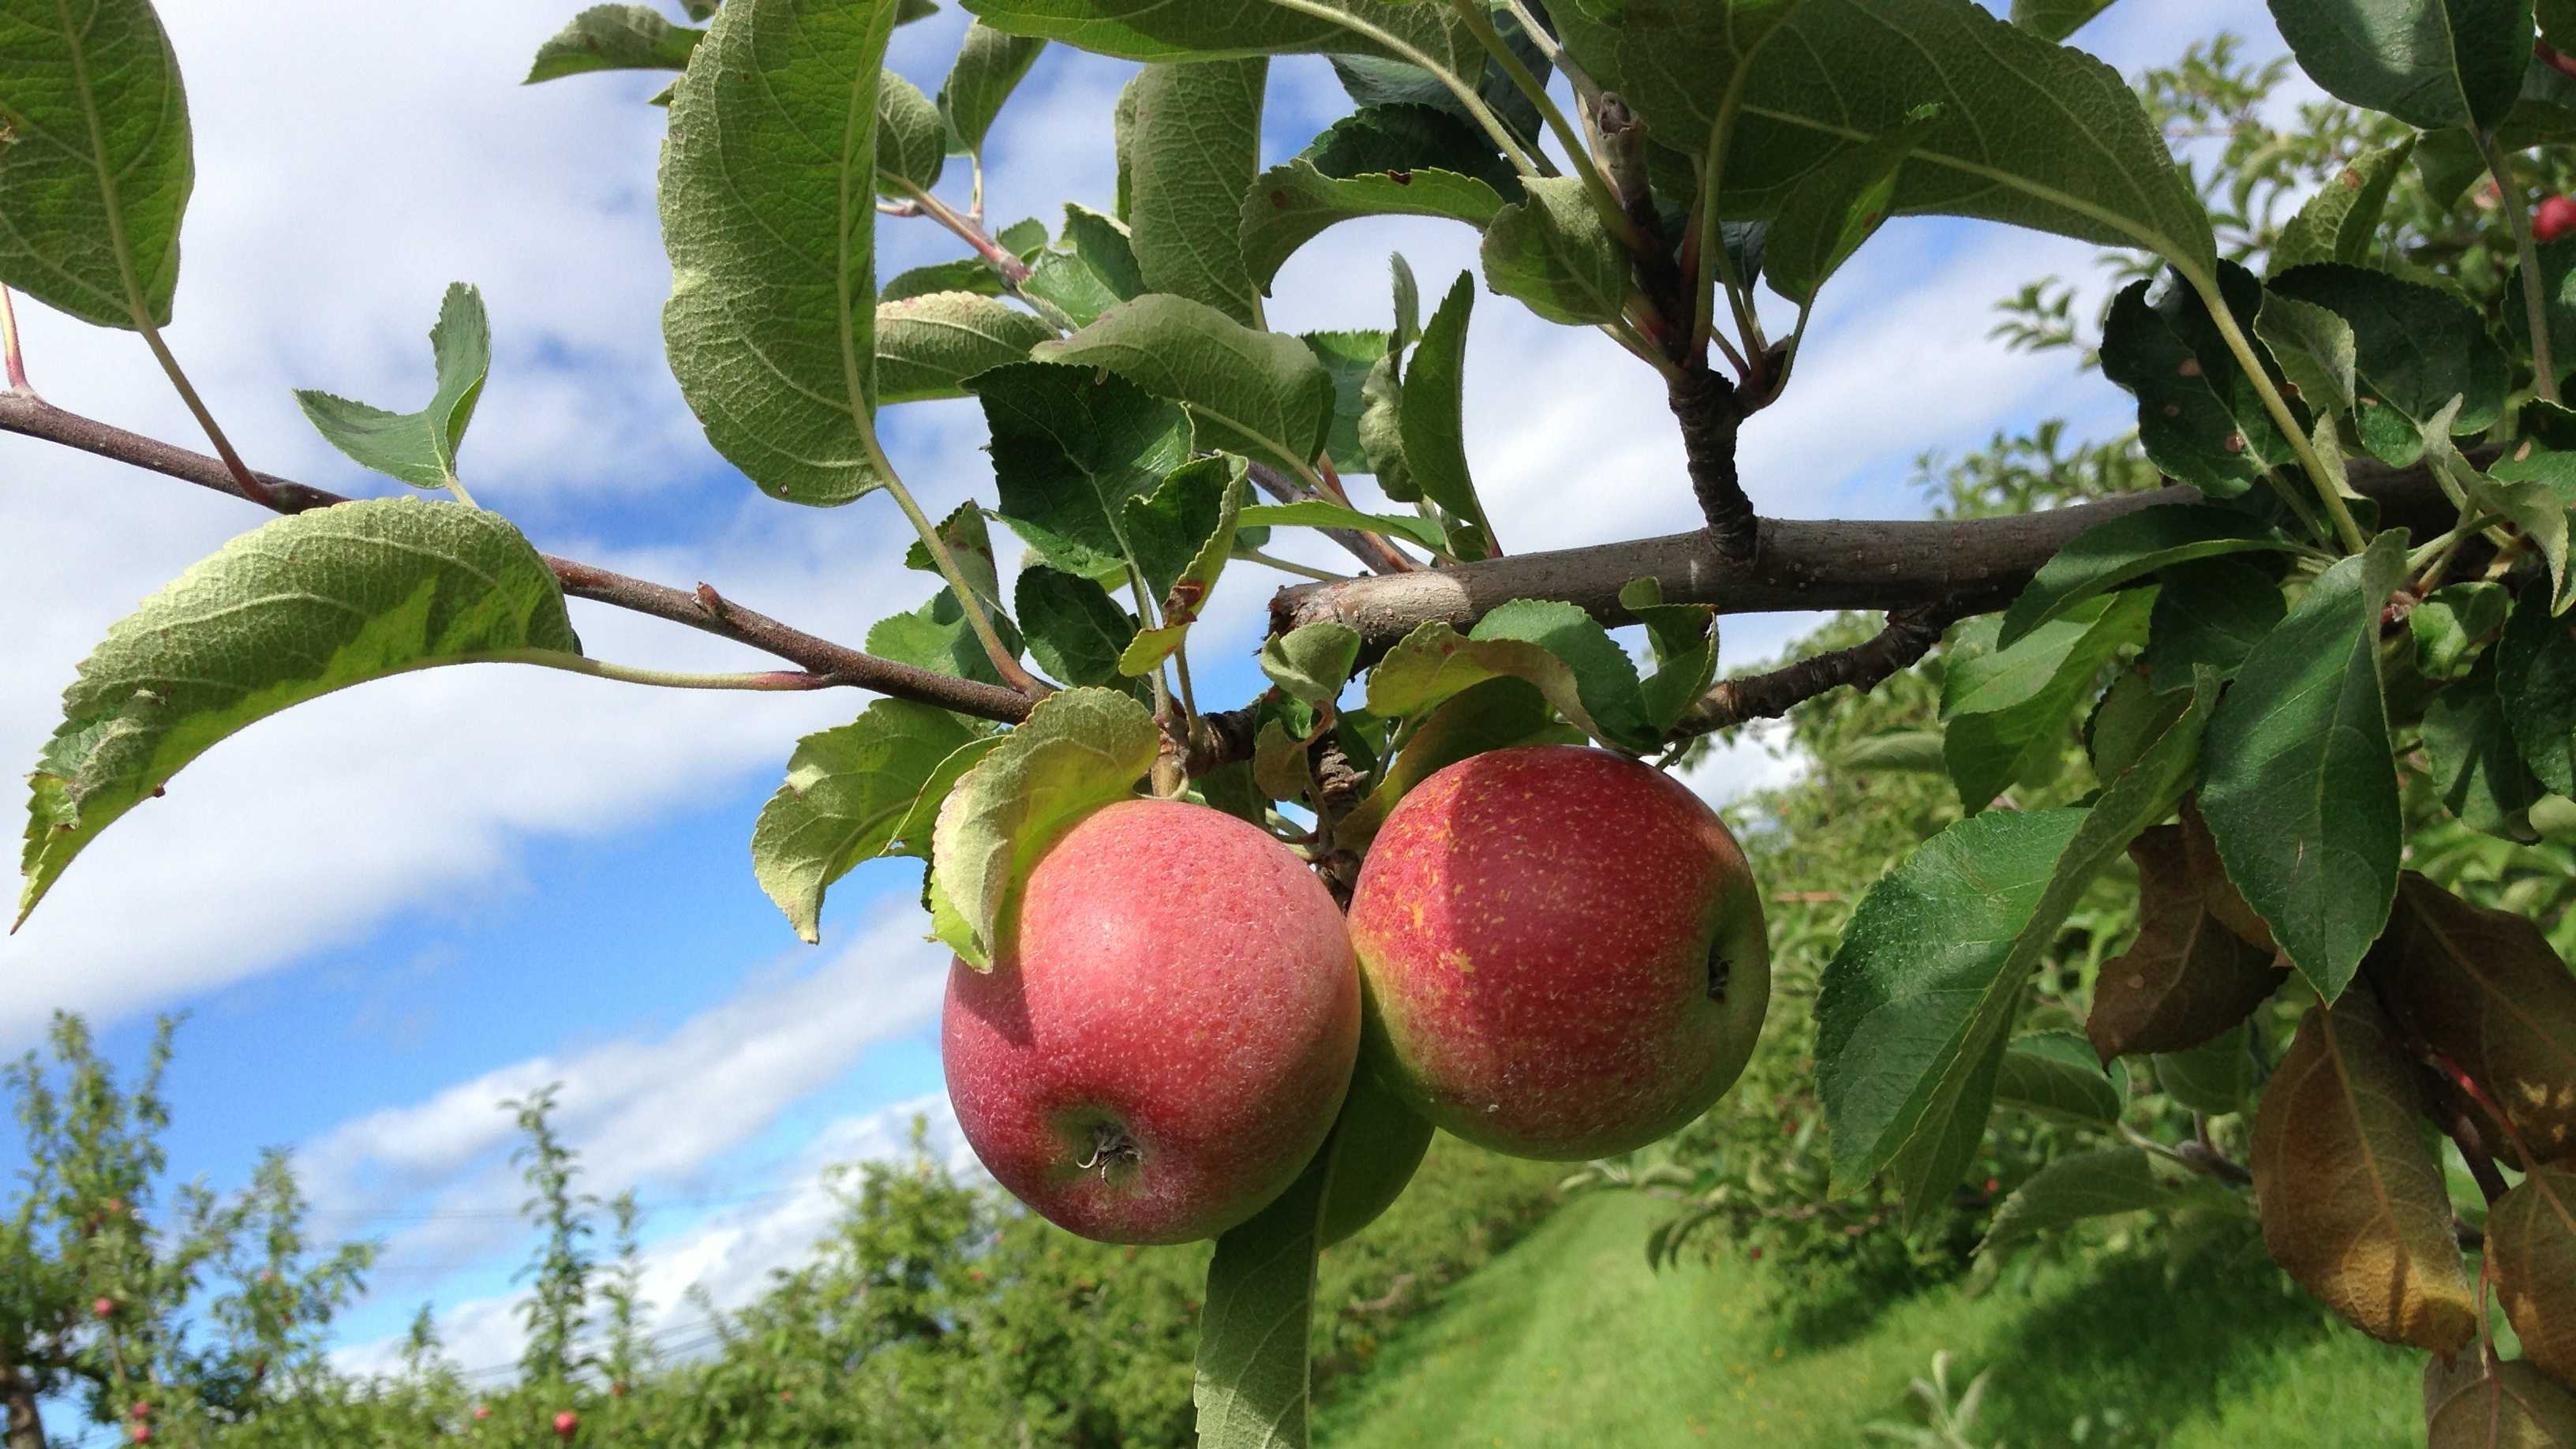 09-03 After disappointing 2012, apple crop predicted to bounce back in 2013 - img